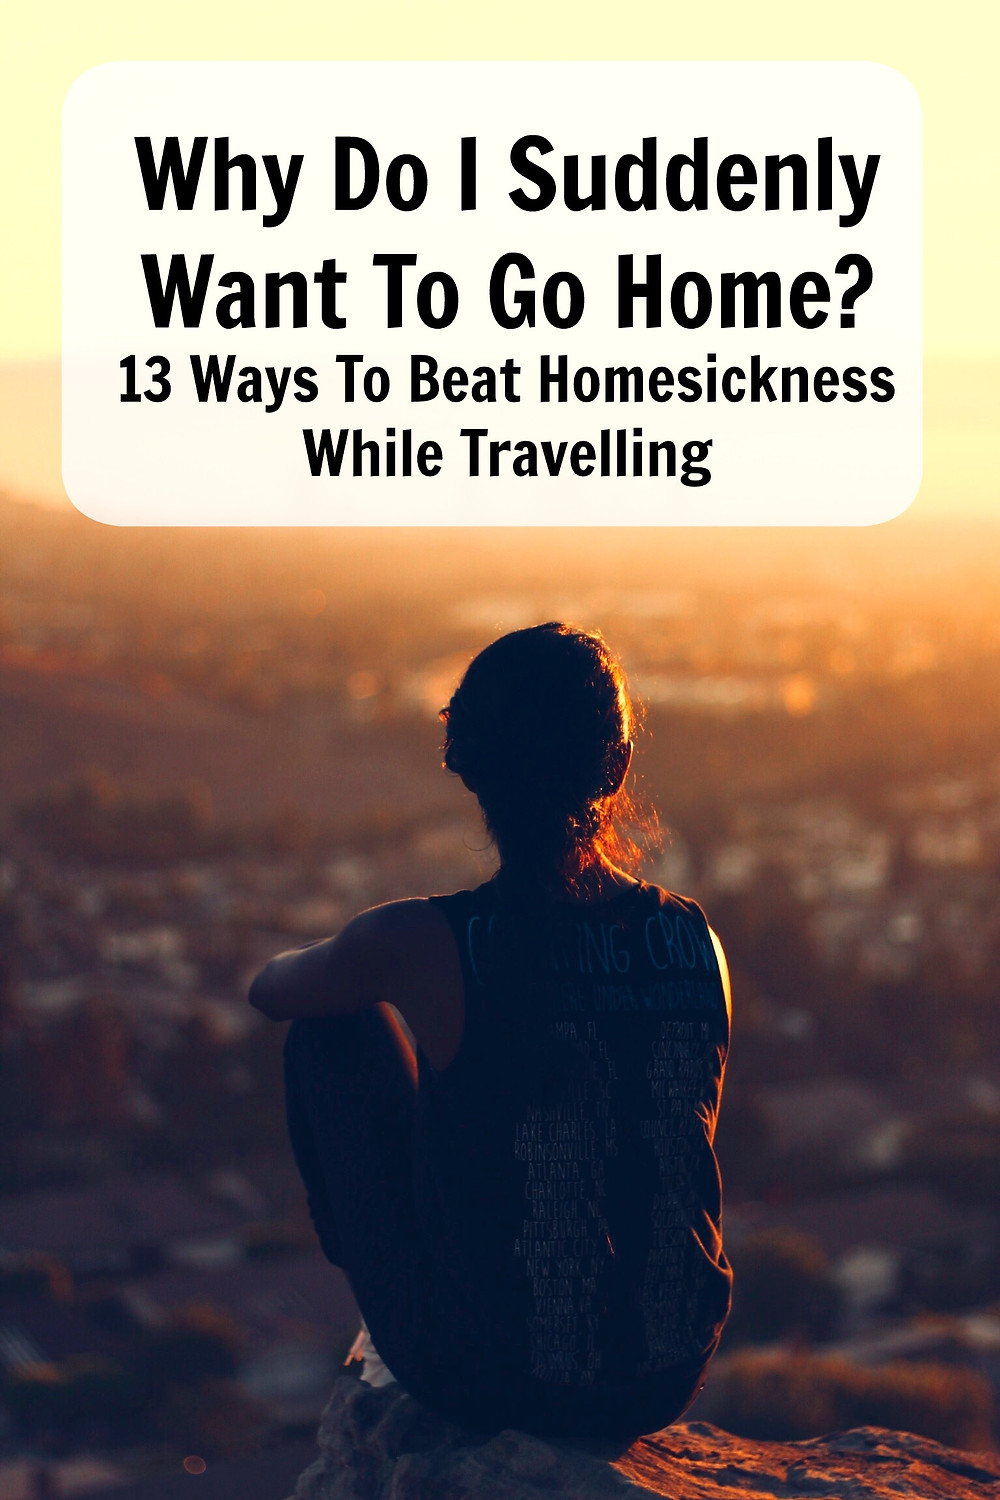 13 ways to beat homesickness while travelling